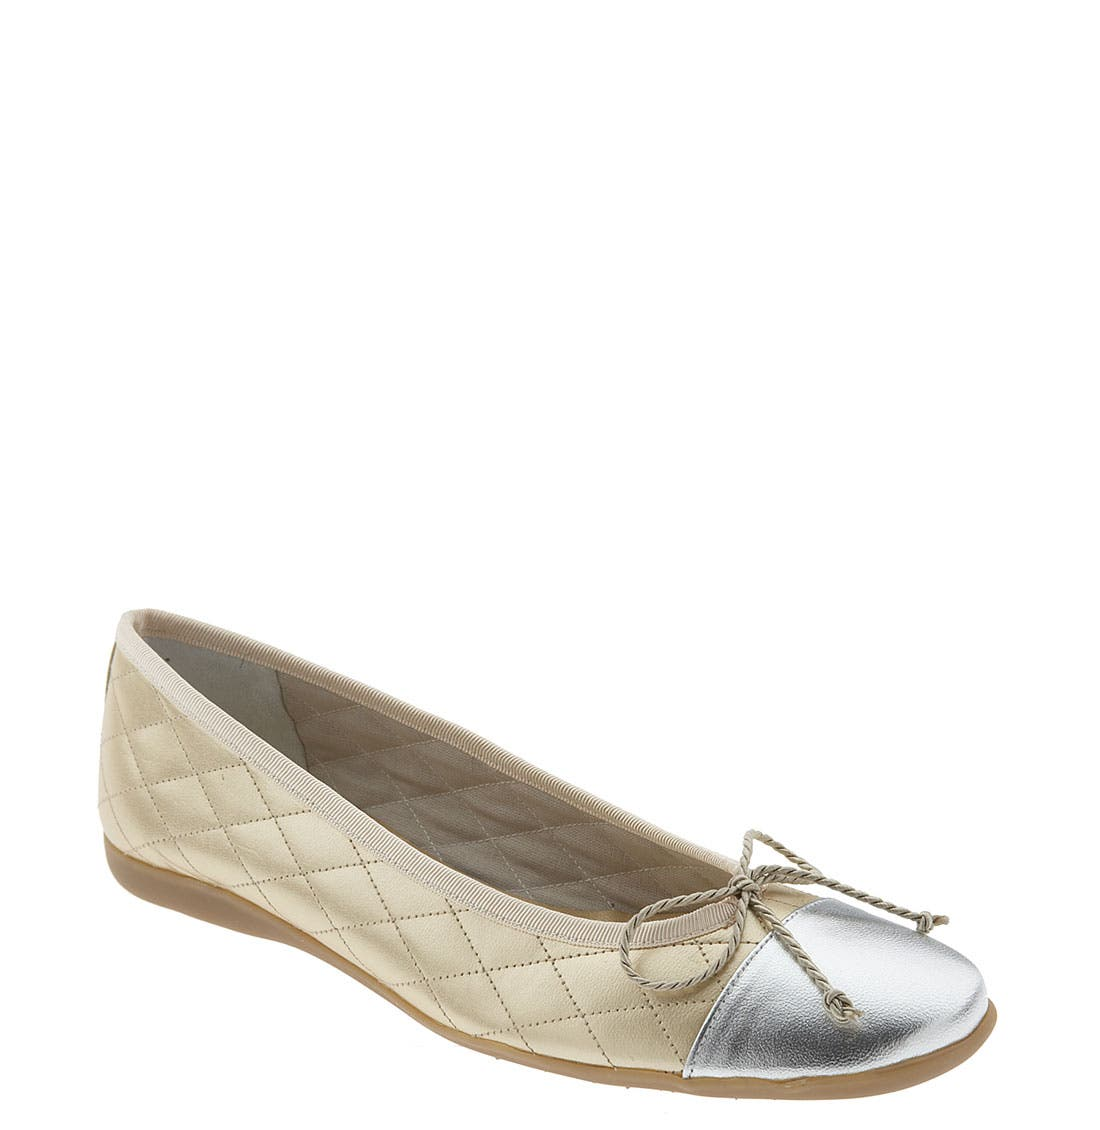 Alternate Image 1 Selected - French Sole 'Passport' Flat